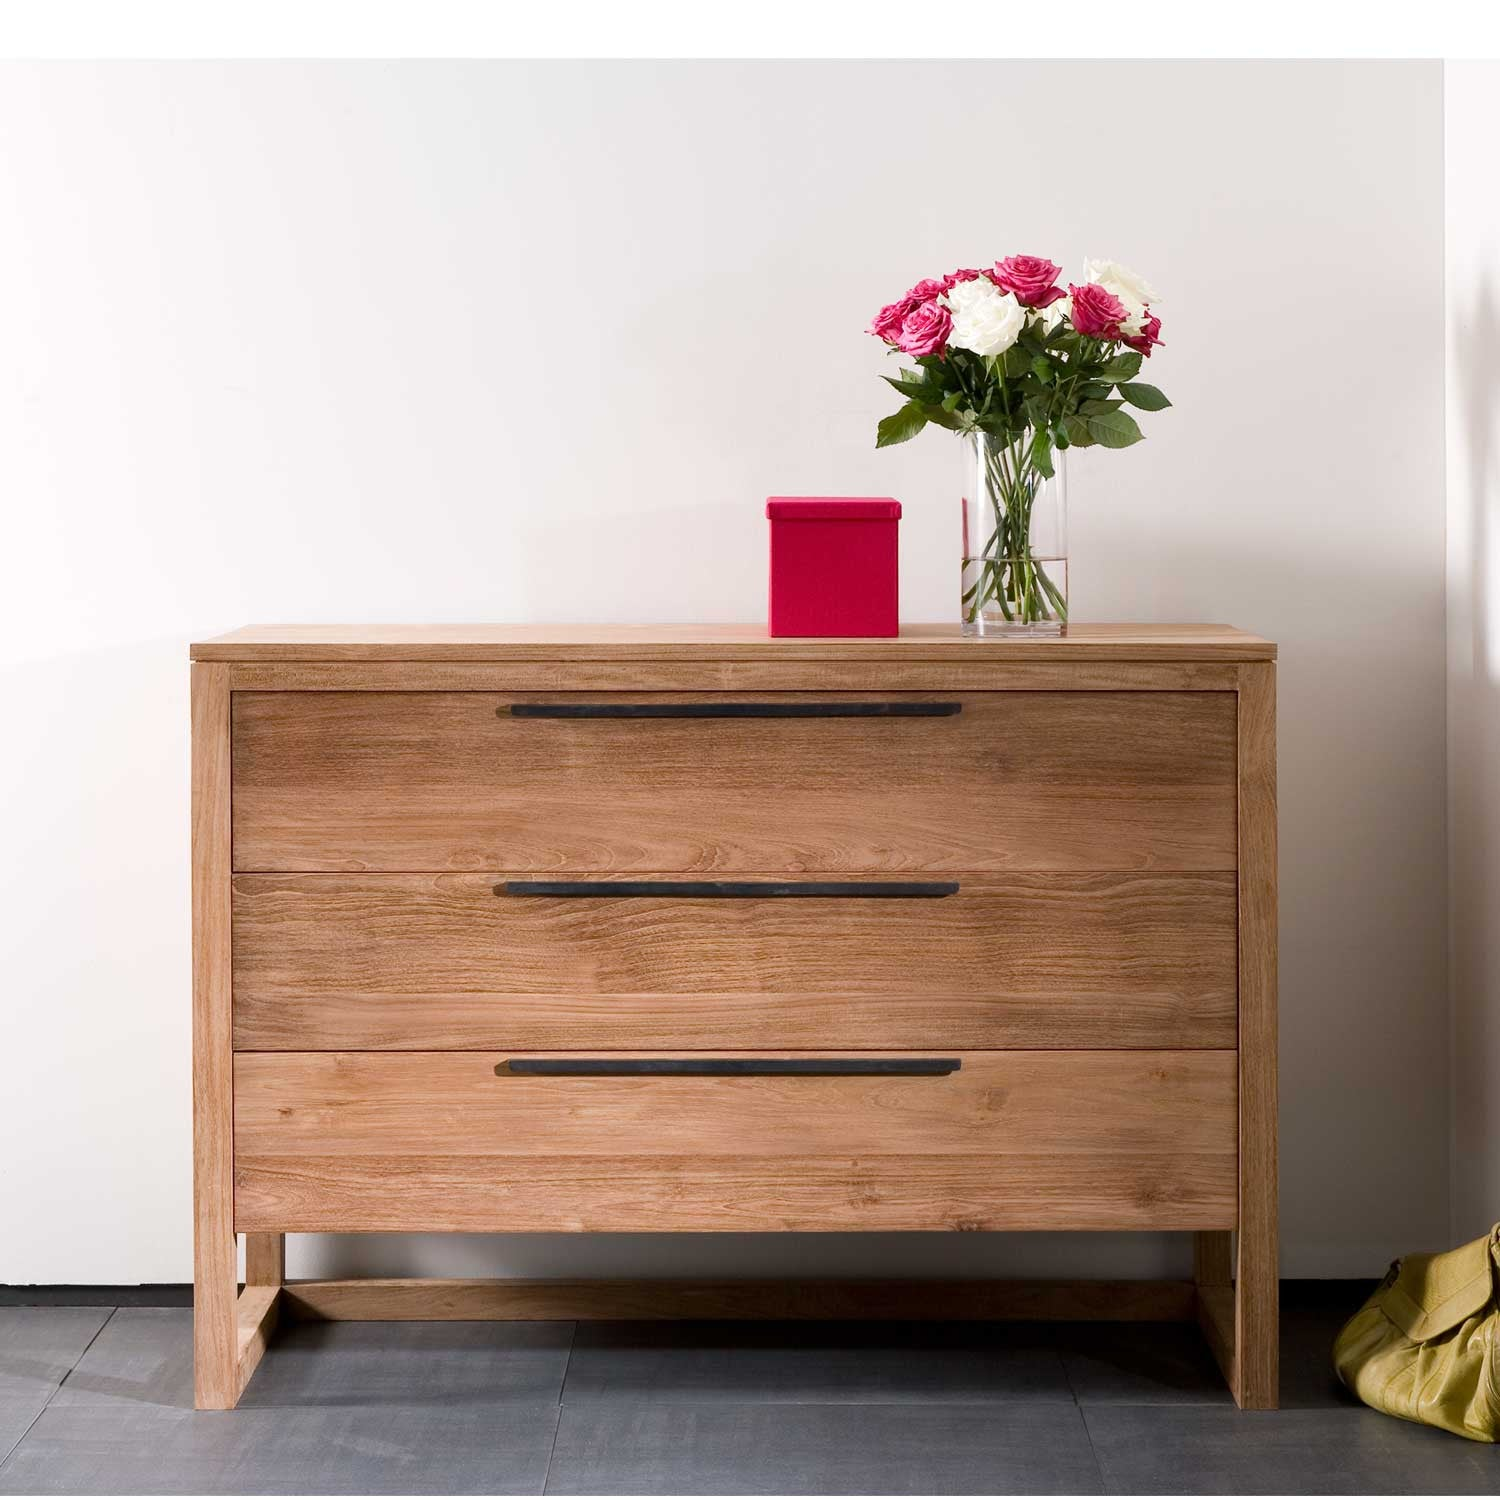 Teak Light Frame Chest of Drawers